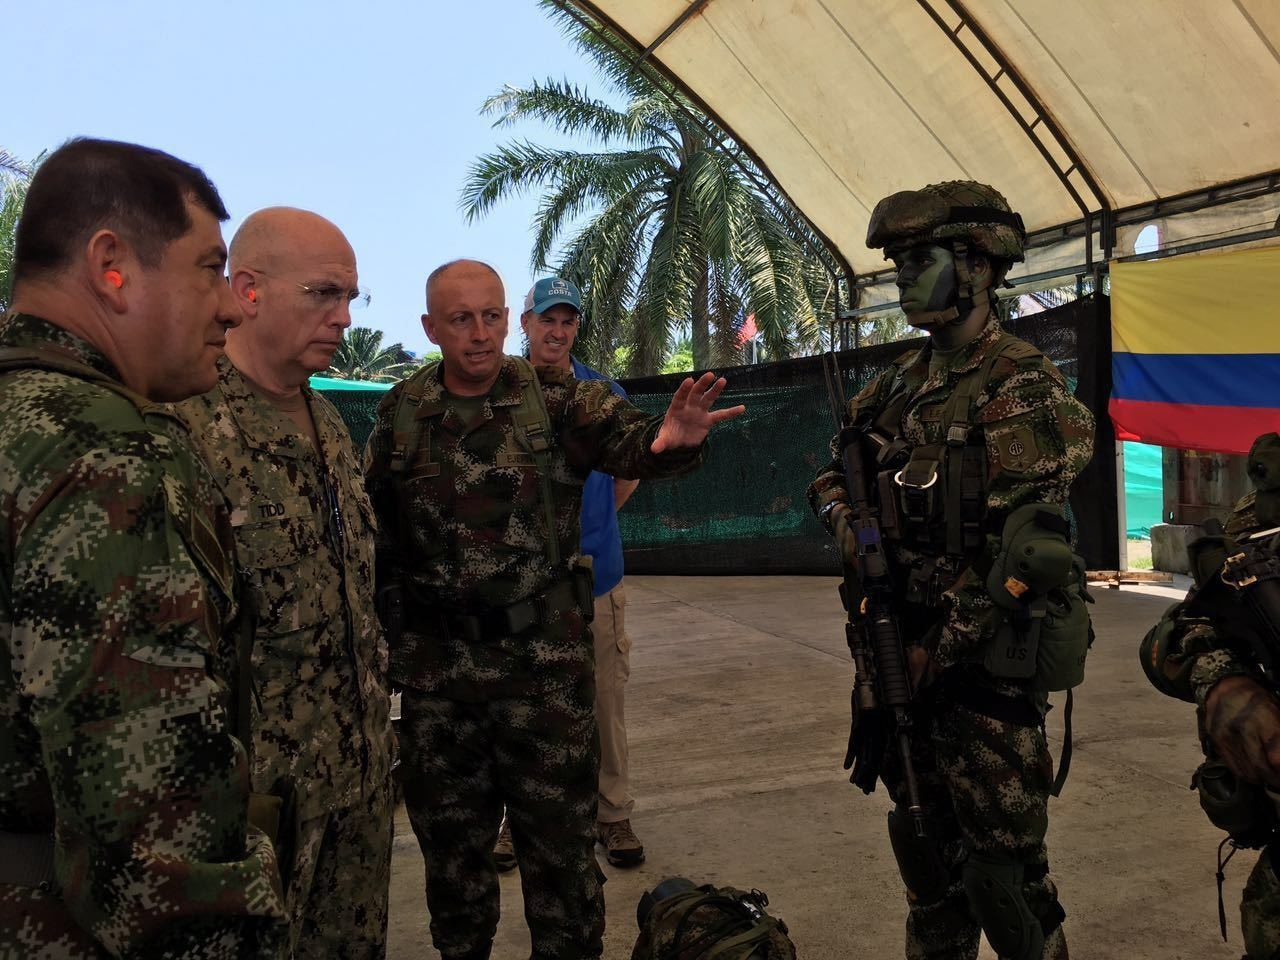 TUMACO, Colombia (April 20, 2016) -- Navy Adm. Kurt W. Tidd, commander of U.S. Southern Command, is briefed on the equipment used by an elite Colombian Army unit in their efforts to disrupt narco-traffickers in the country.  Tidd was in Colombia April 21 - 22 to meet with military leadership there and get a firsthand look at Colombia military troops on the front lines of efforts to disrupt the activities of narco-traffickers and illegally armed groups. (Photo courtesy of the Colombian Armed Forces)